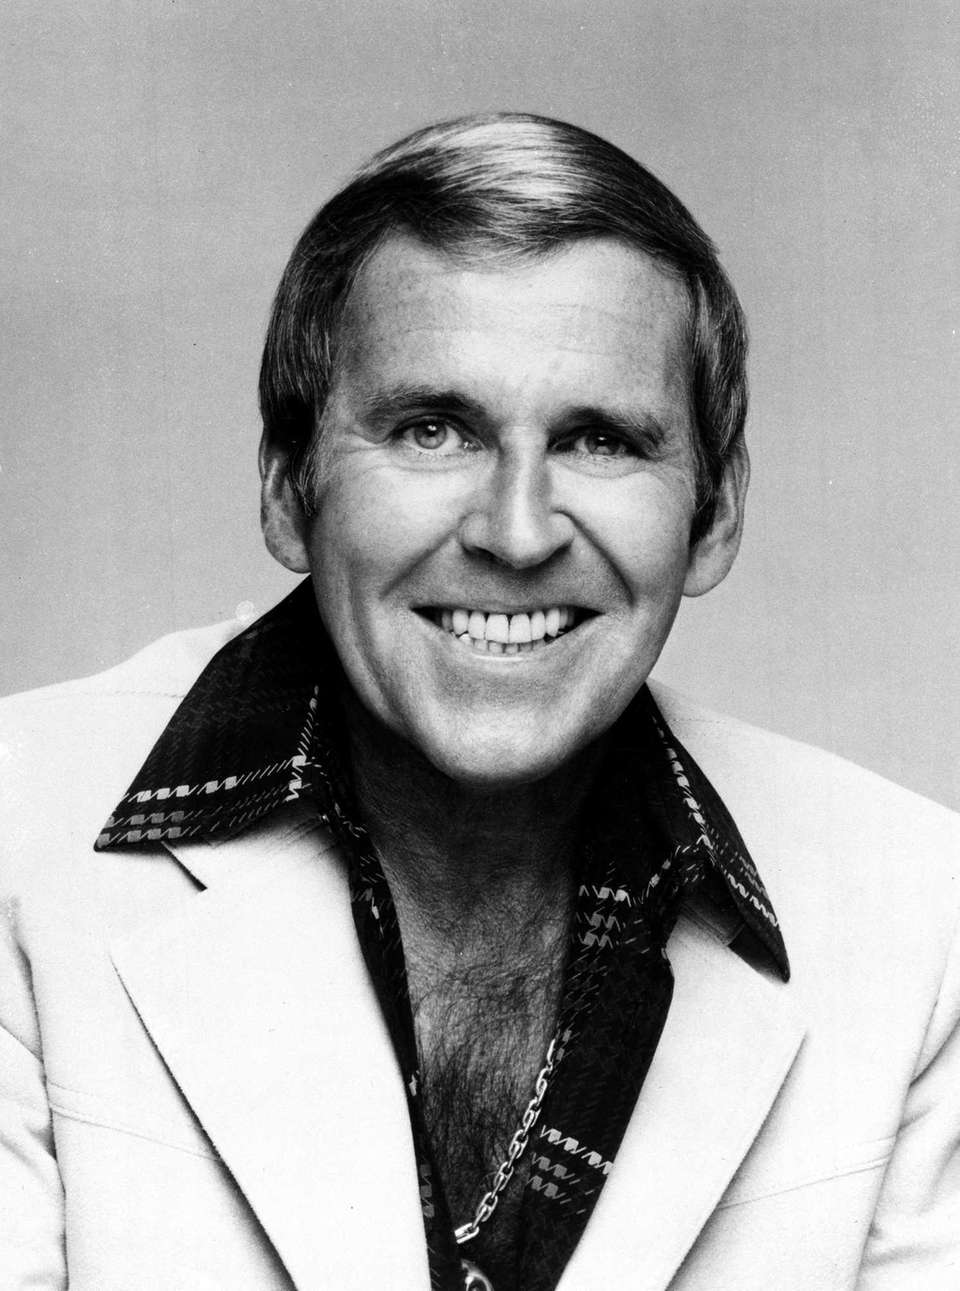 Actor-comedian Paul Lynde in October 1975.